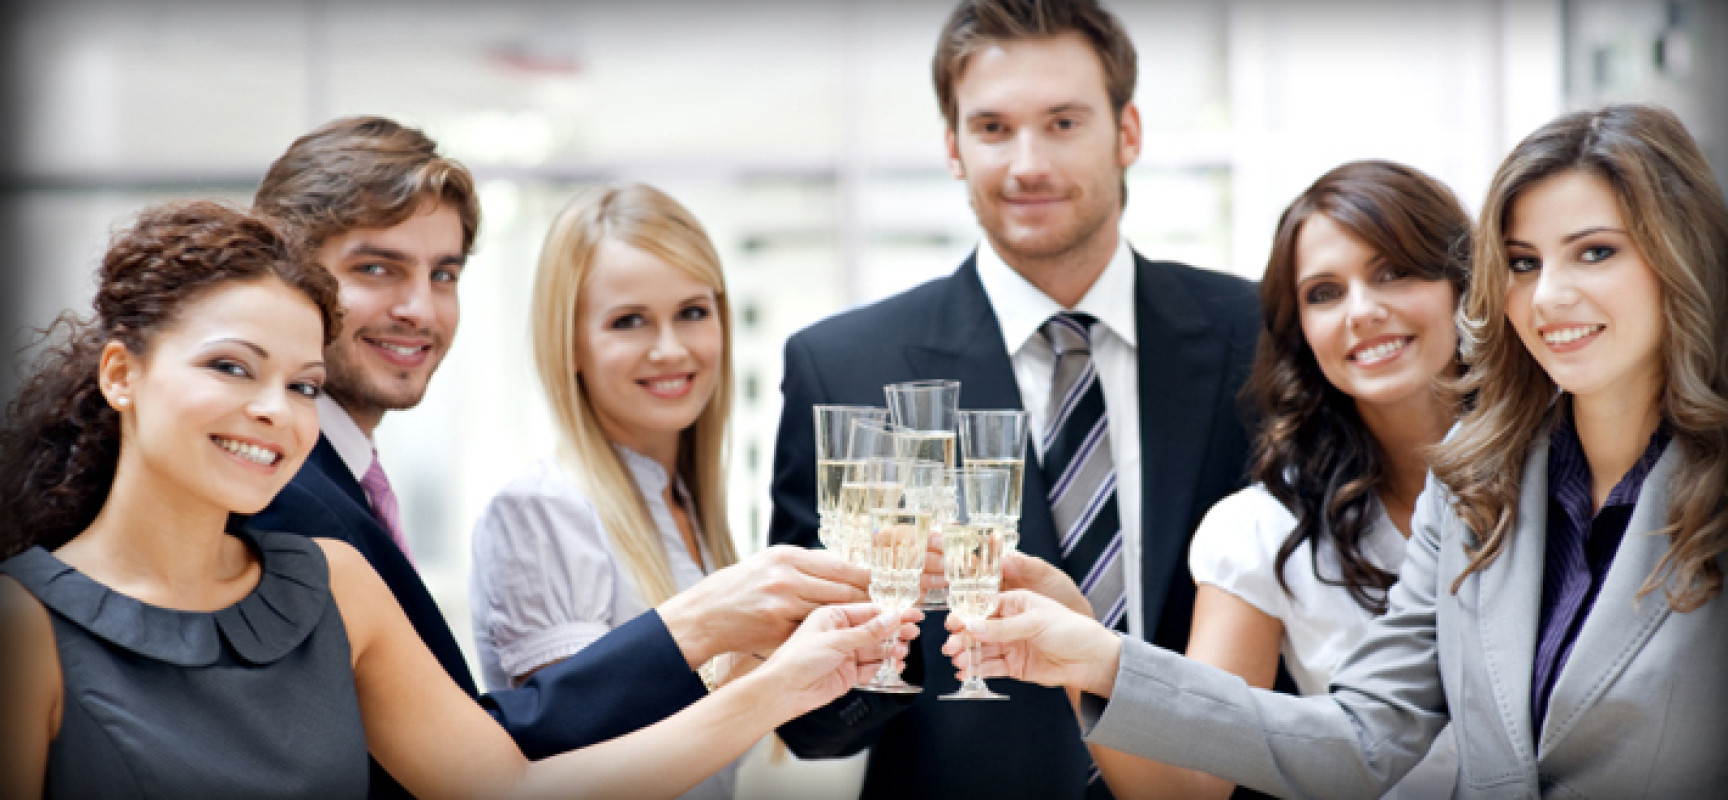 Find The Perfect Corporate Entertainment Solution For Your Corporate Event